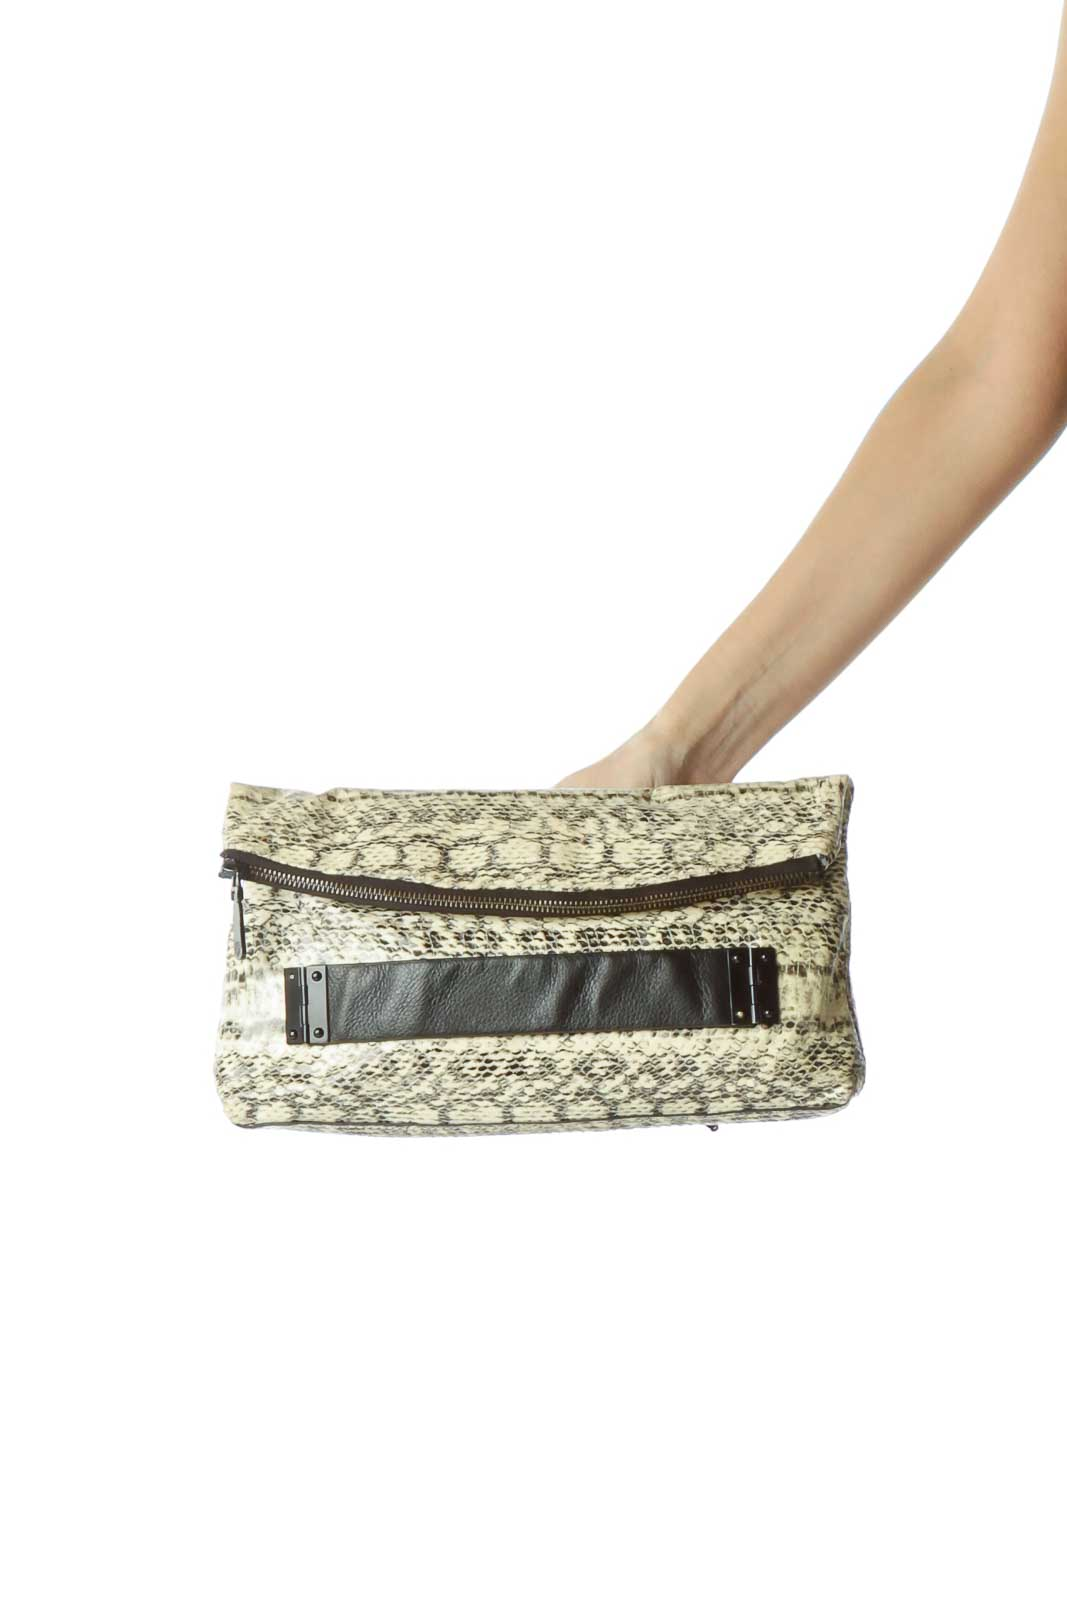 Black Cream Snake Skin Print Clutch